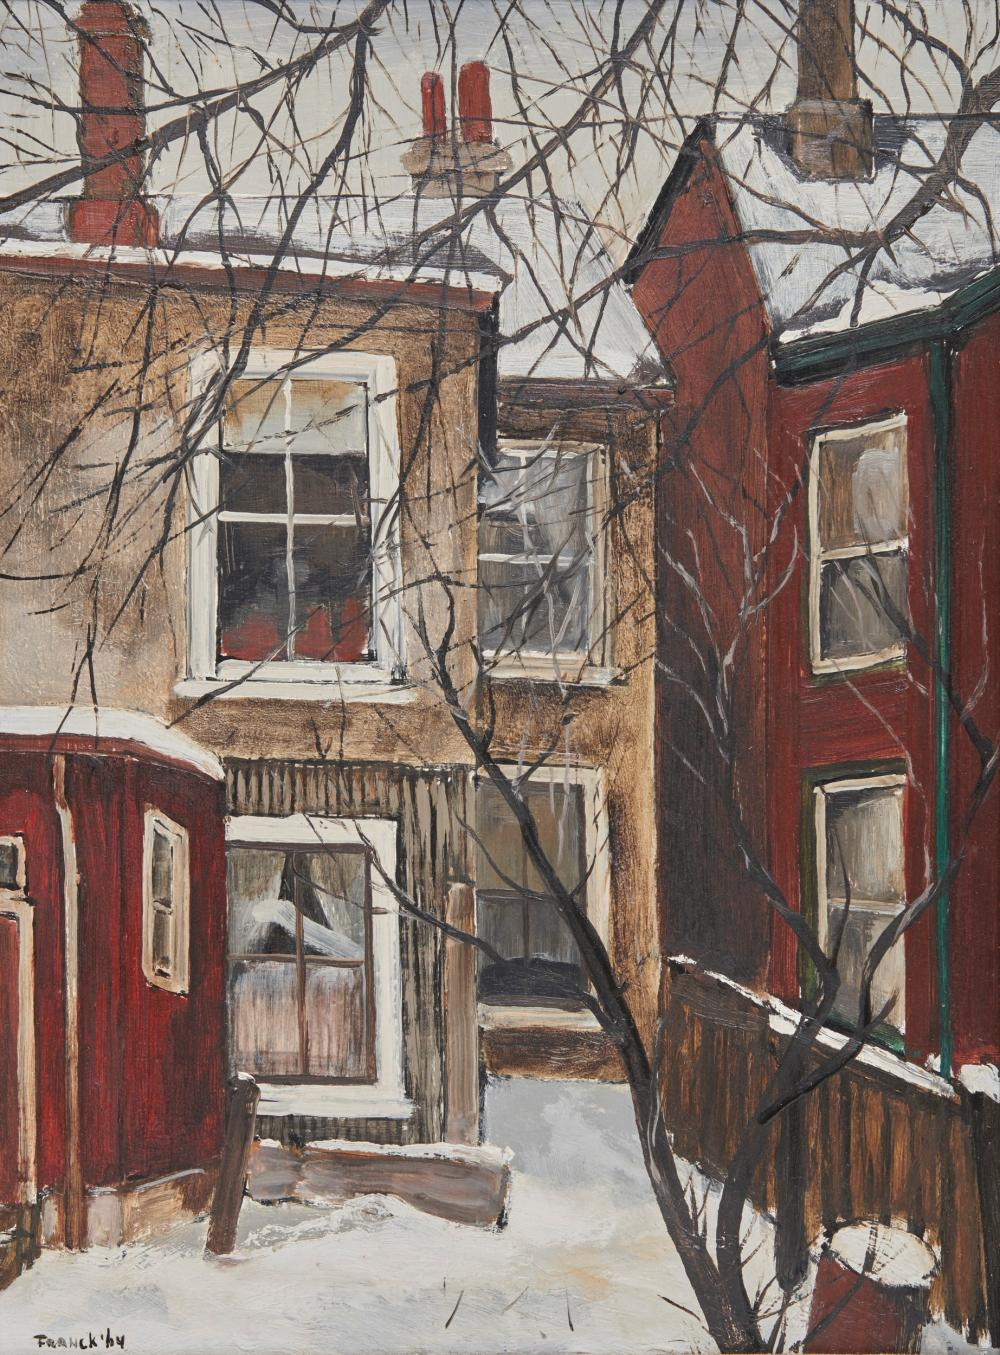 ALBERT JACQUES FRANCK, (Canadian, 1899-1973), Behind Major Street, oil on masonite, 16 x 12 in., frame: 24 1/2 x 20 3/4 in.